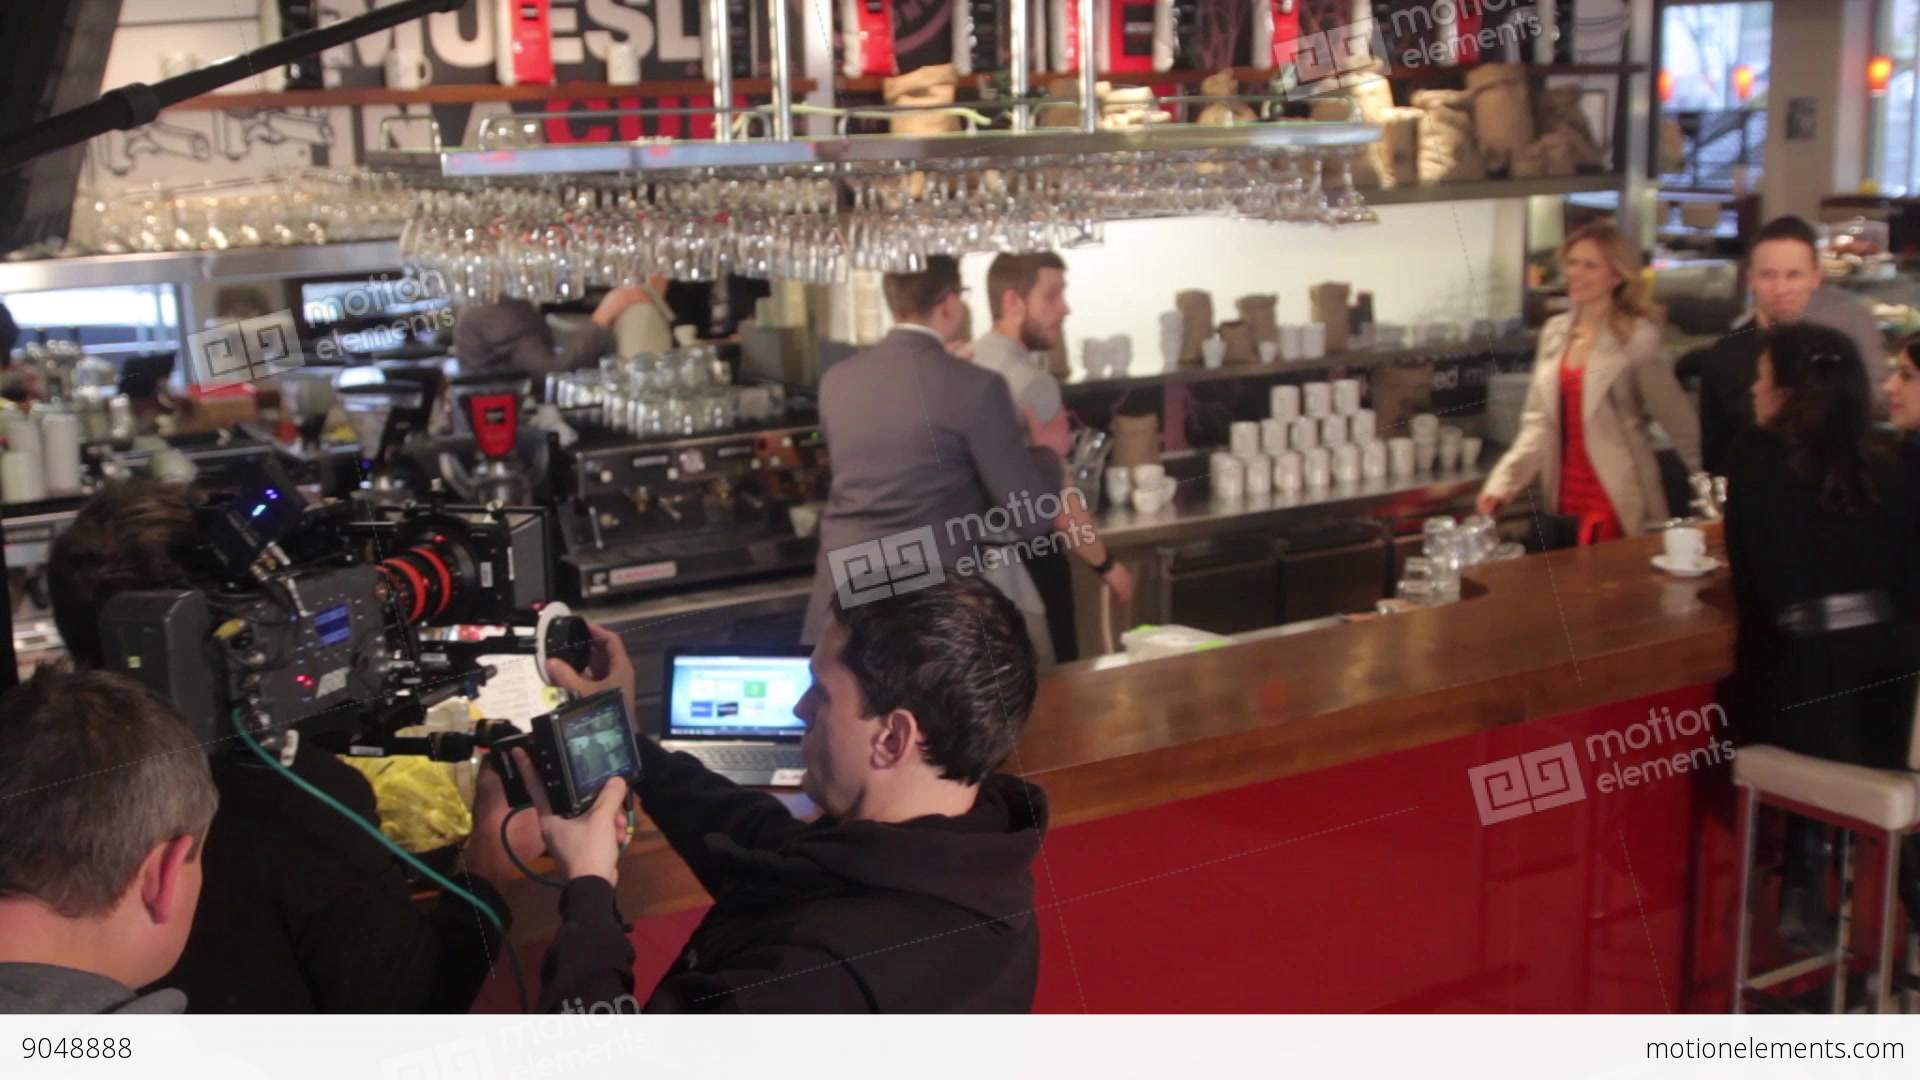 the actors play roles in movies the backstage of filmmaking stock